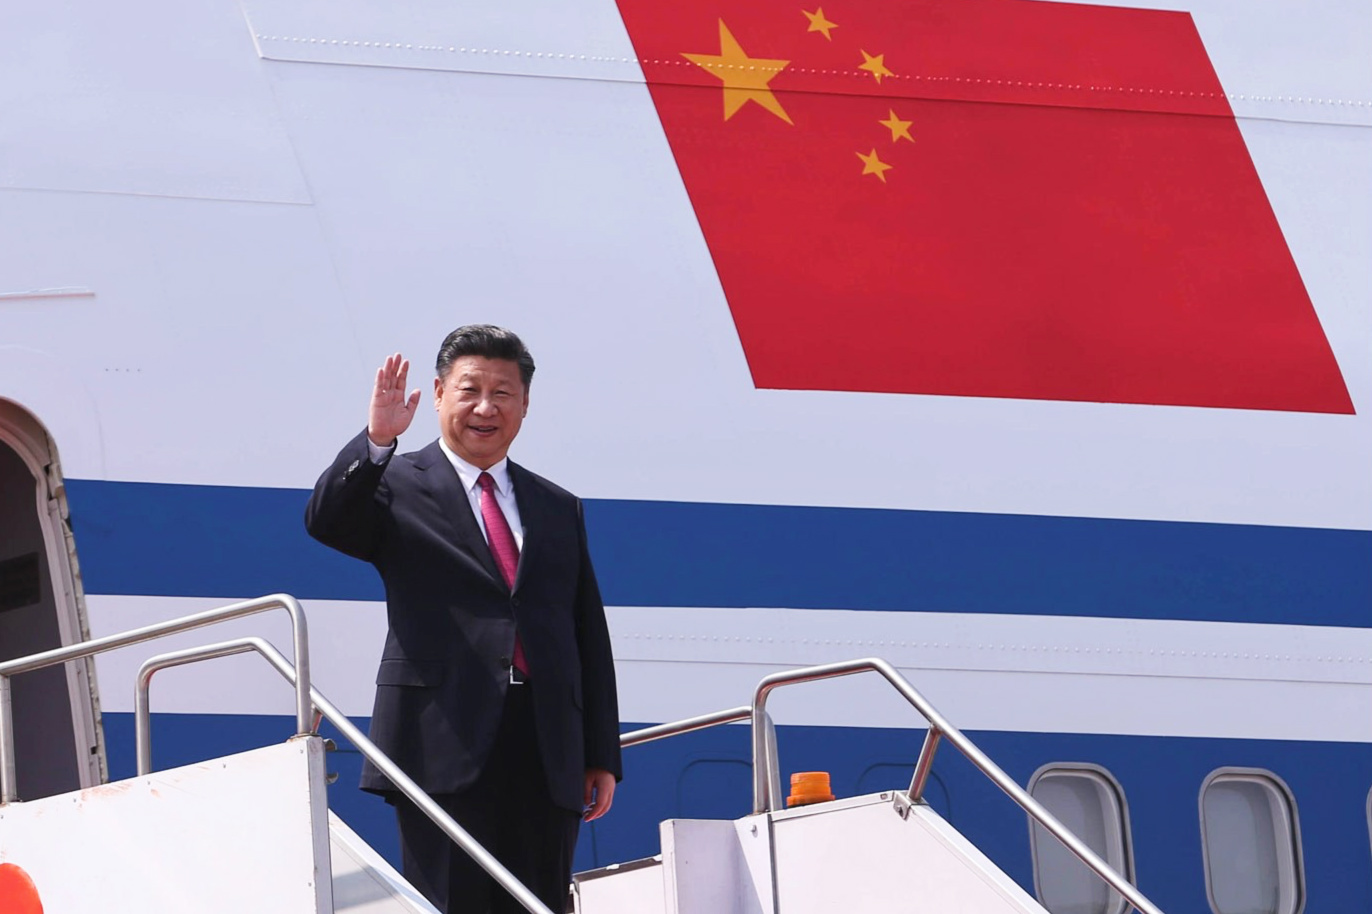 Xi leaves for state visit to Greece, BRICS summit in Brazil